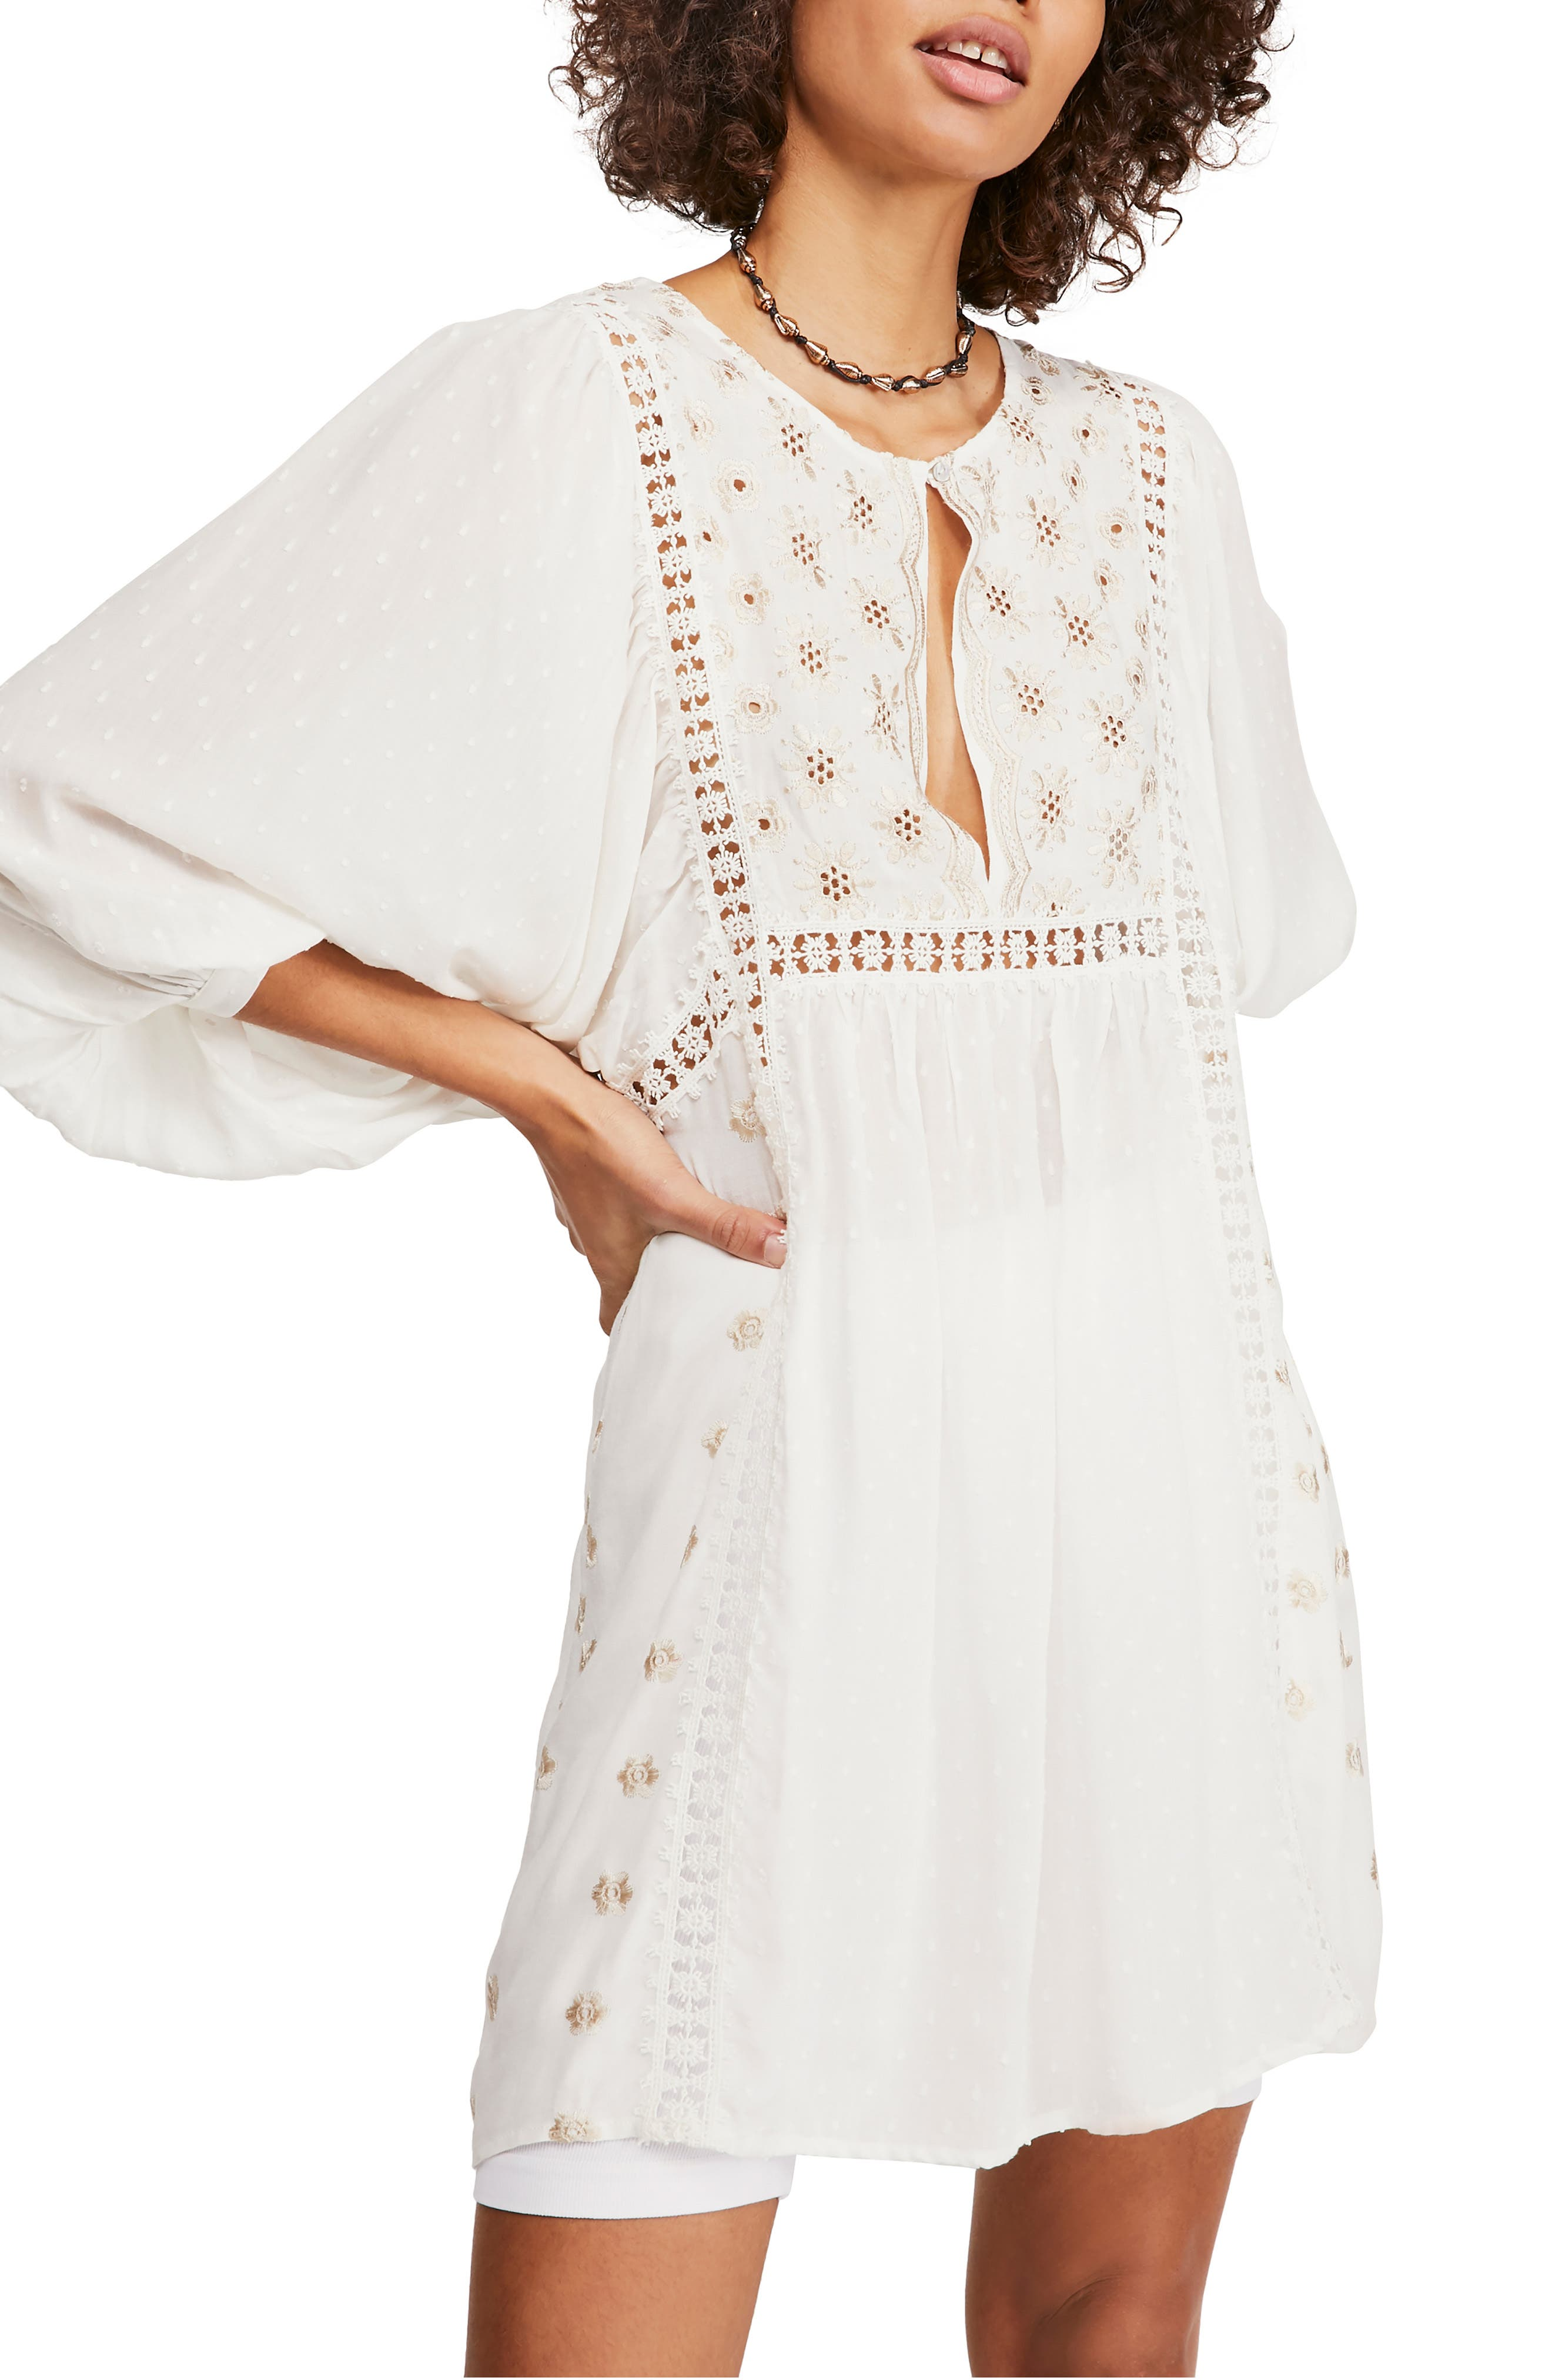 Free People Tops Embroidered Tunic